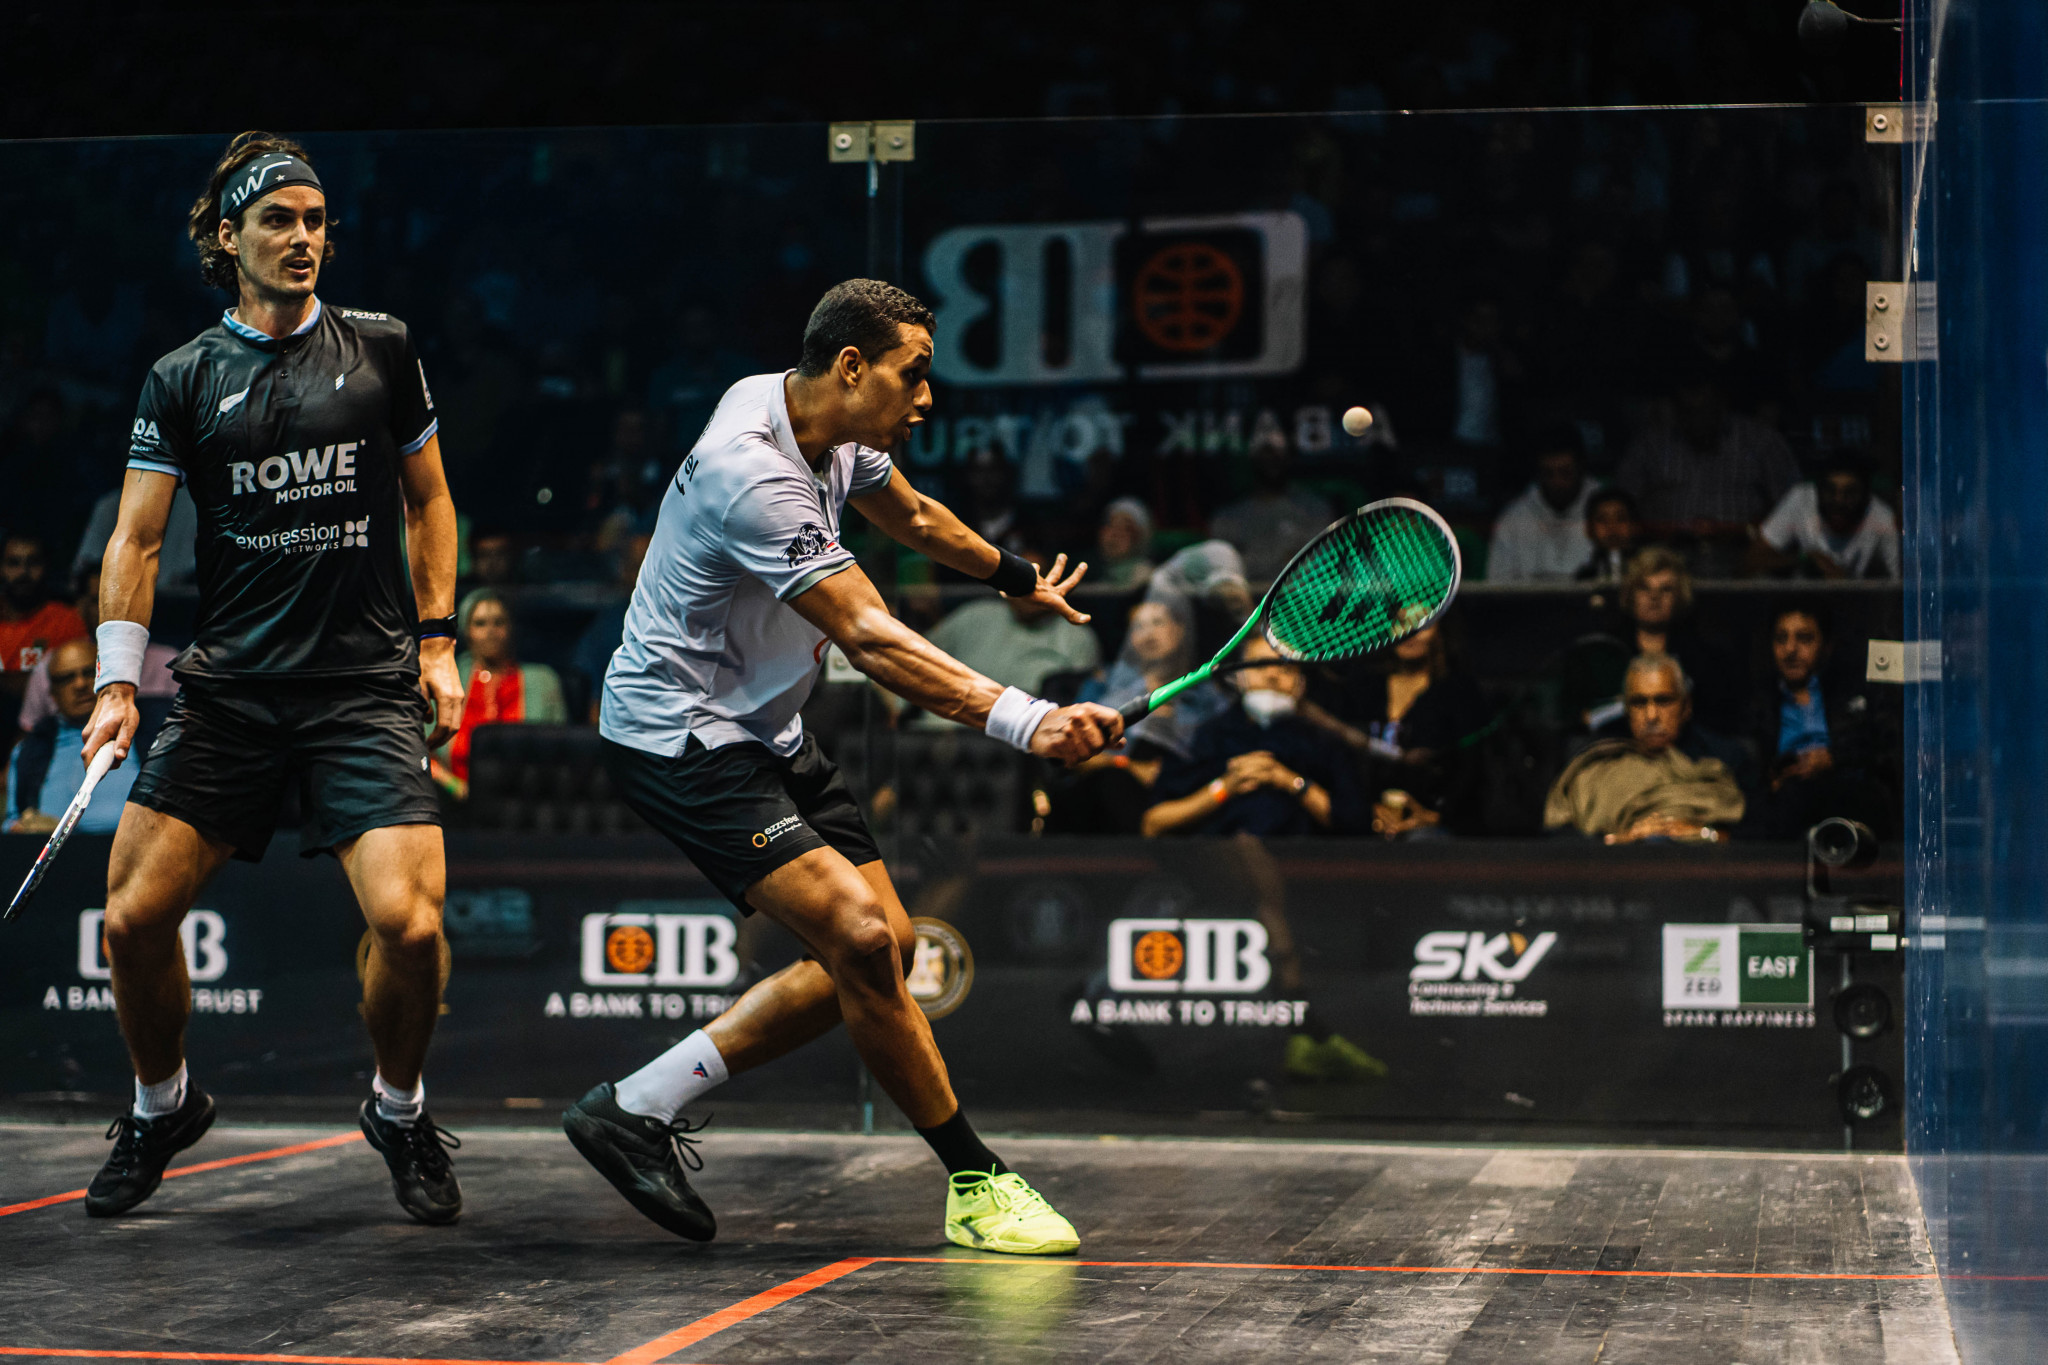 Paul Coll and Mostafa Asal could meet again at the Black Ball Squash Open after their battle at the Egyptian Open last month ©PSA